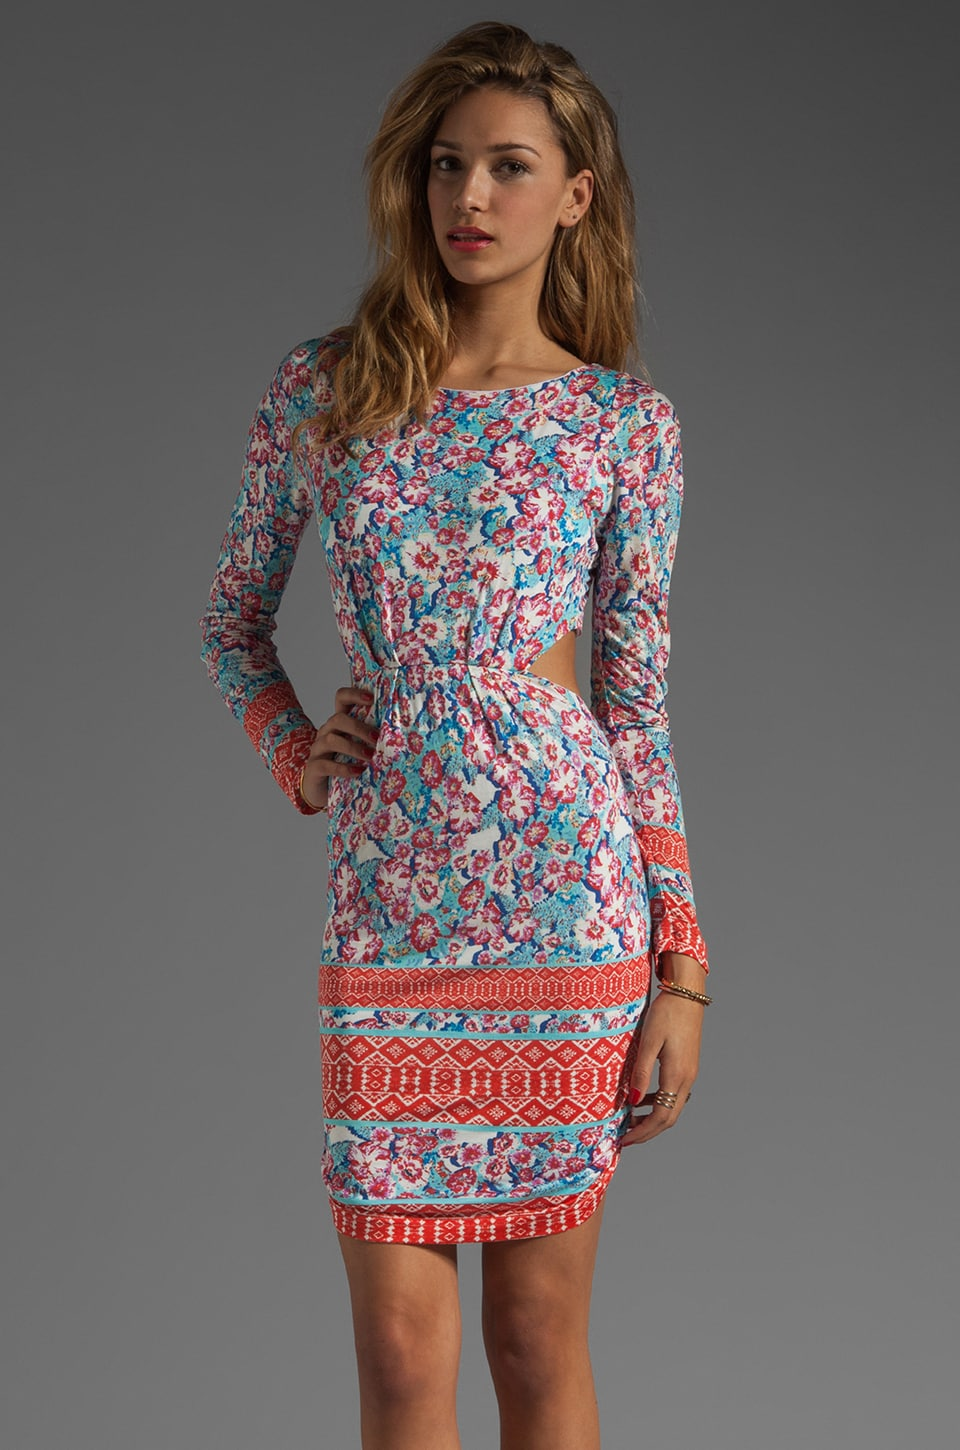 Pencey Standard Open Back Dress in Afghani Print